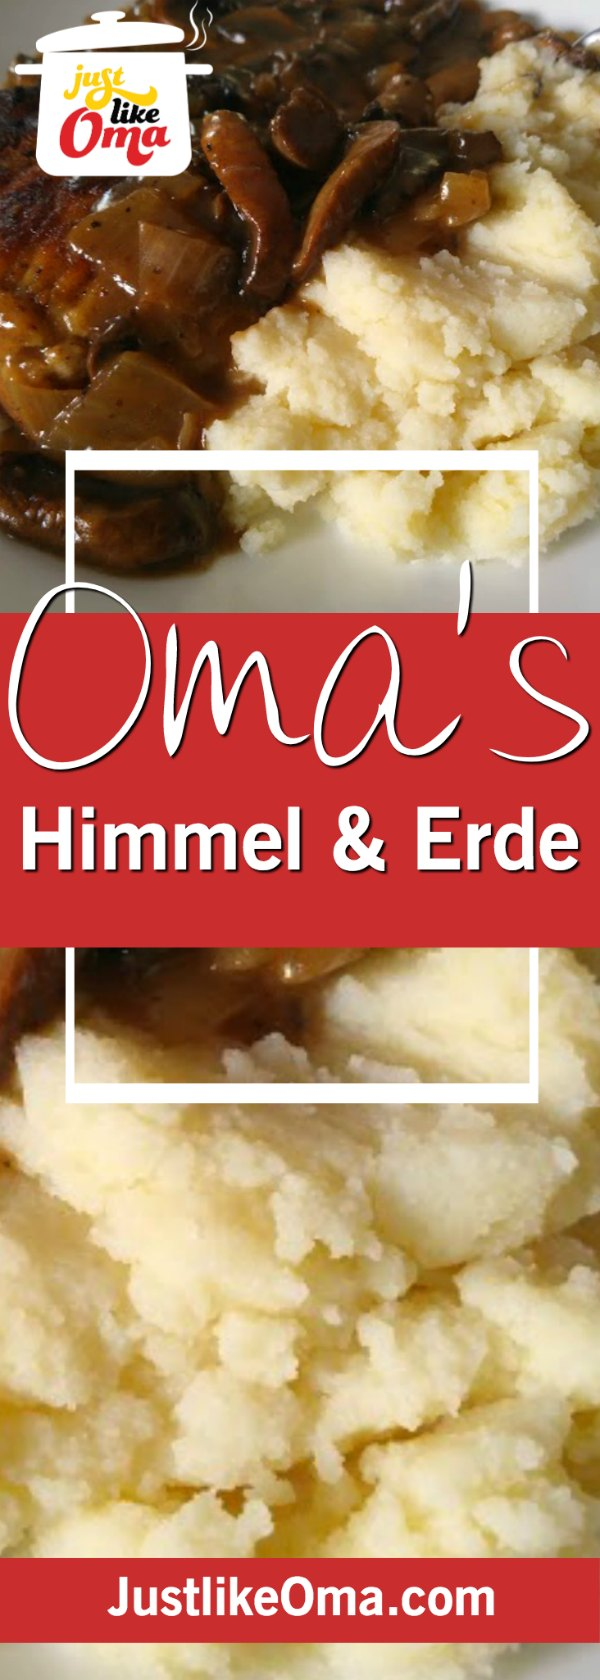 Himmel und Erde, aka Heaven and Earth, combining apples and potatoes.